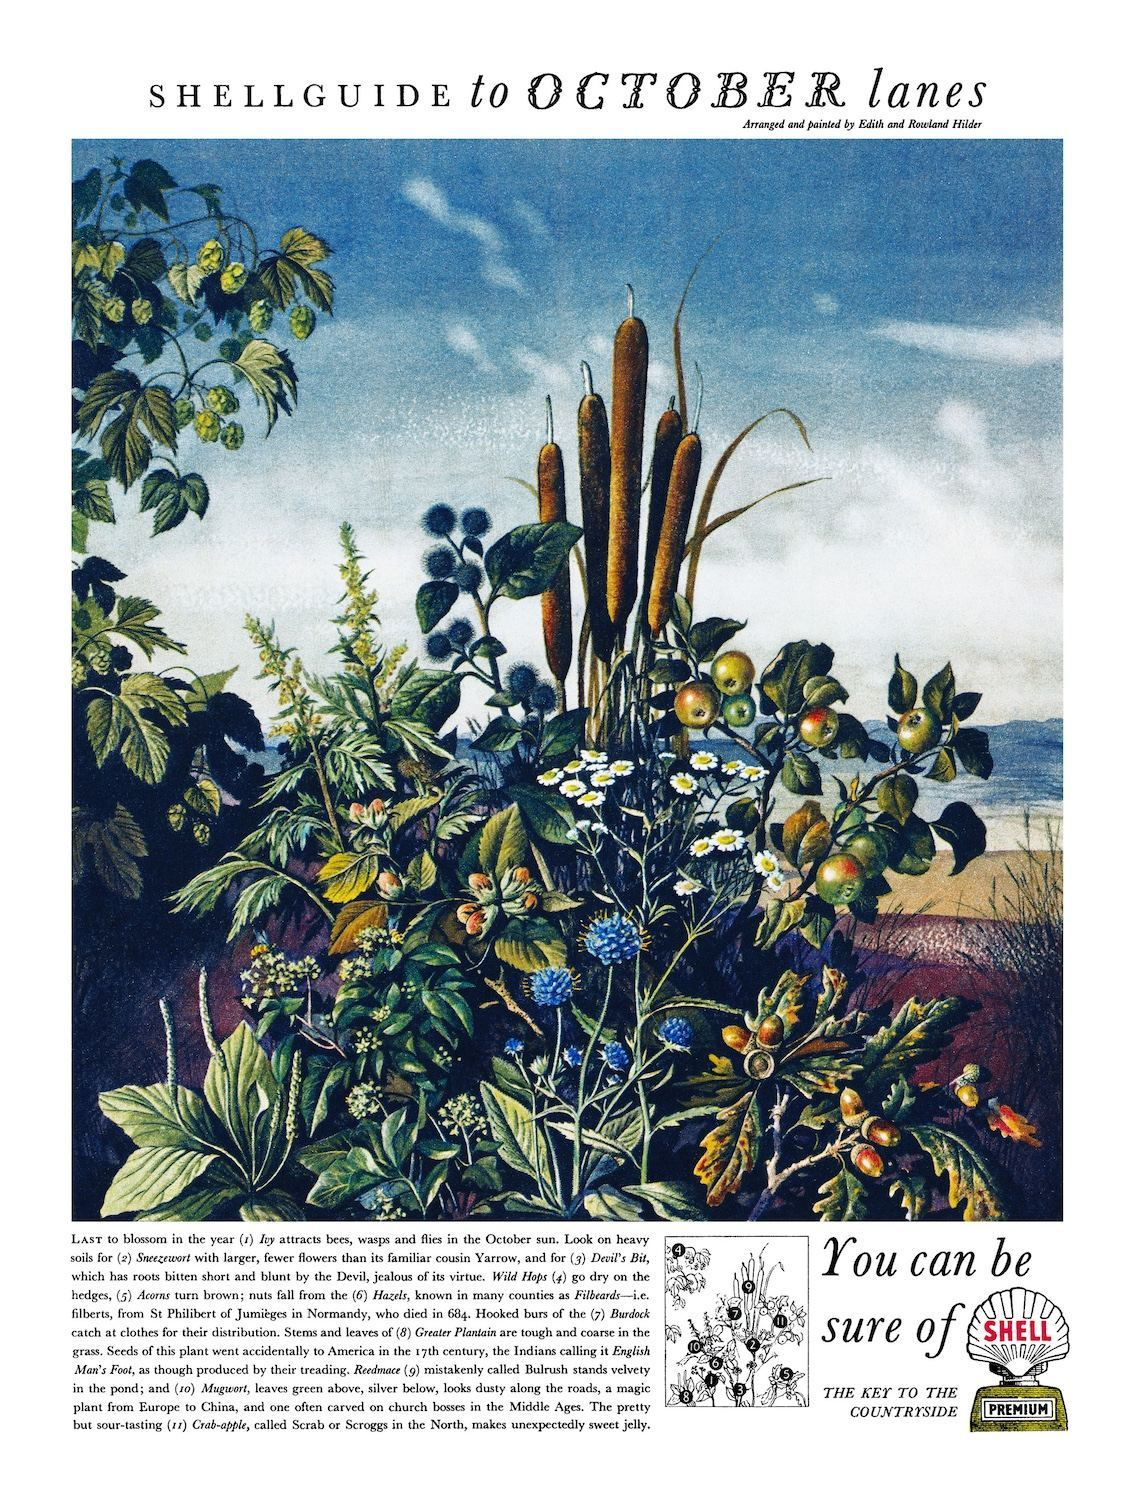 1954, illustrated by Edith and Rowland Hilder